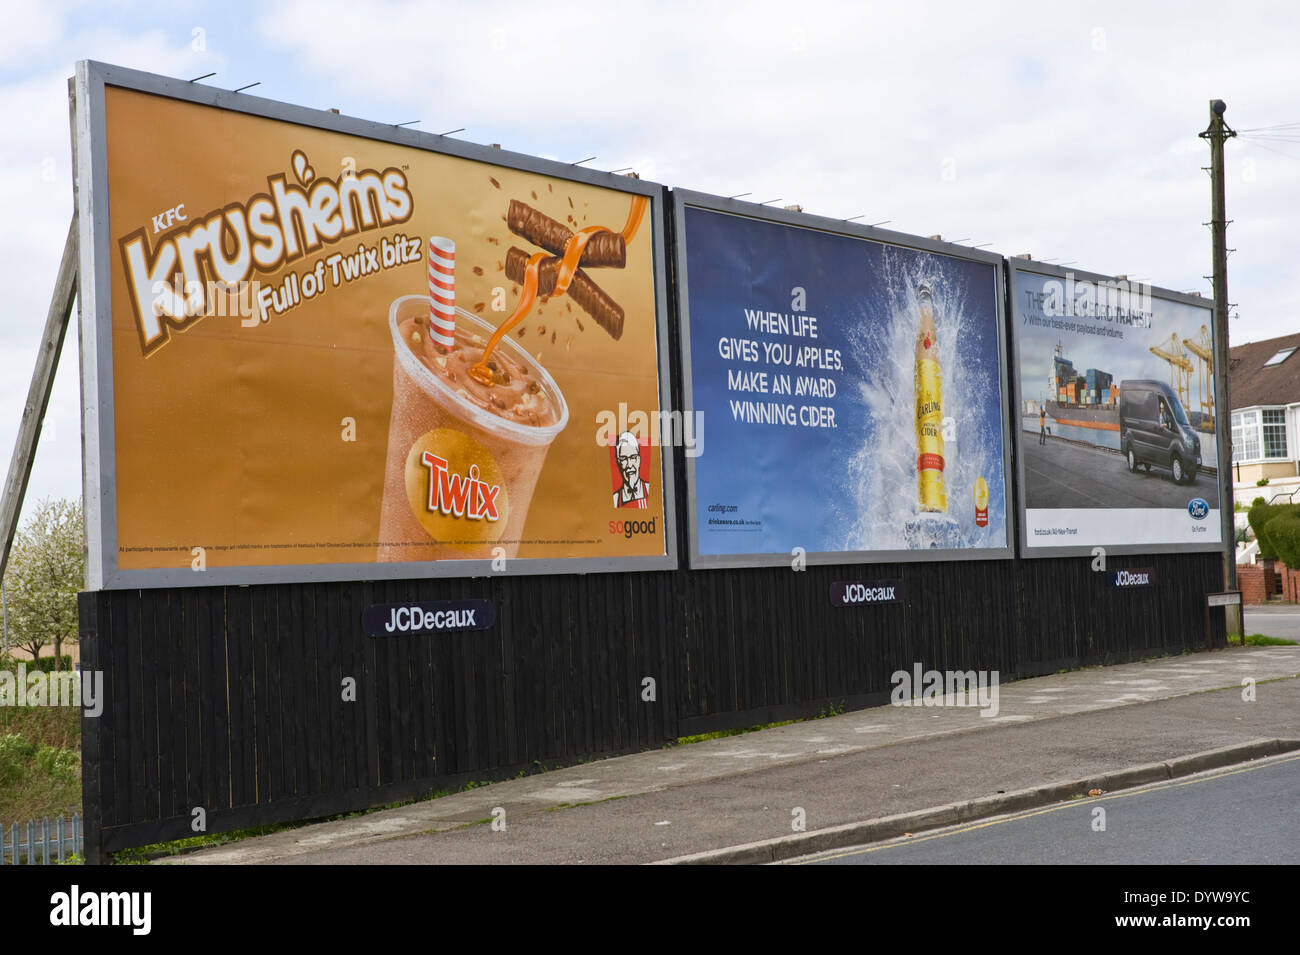 KFC Krushems with Twix, Carling Cider & Ford Transit Van advertising billboards on JCDecaux roadside site in Newport South Wales UK - Stock Image